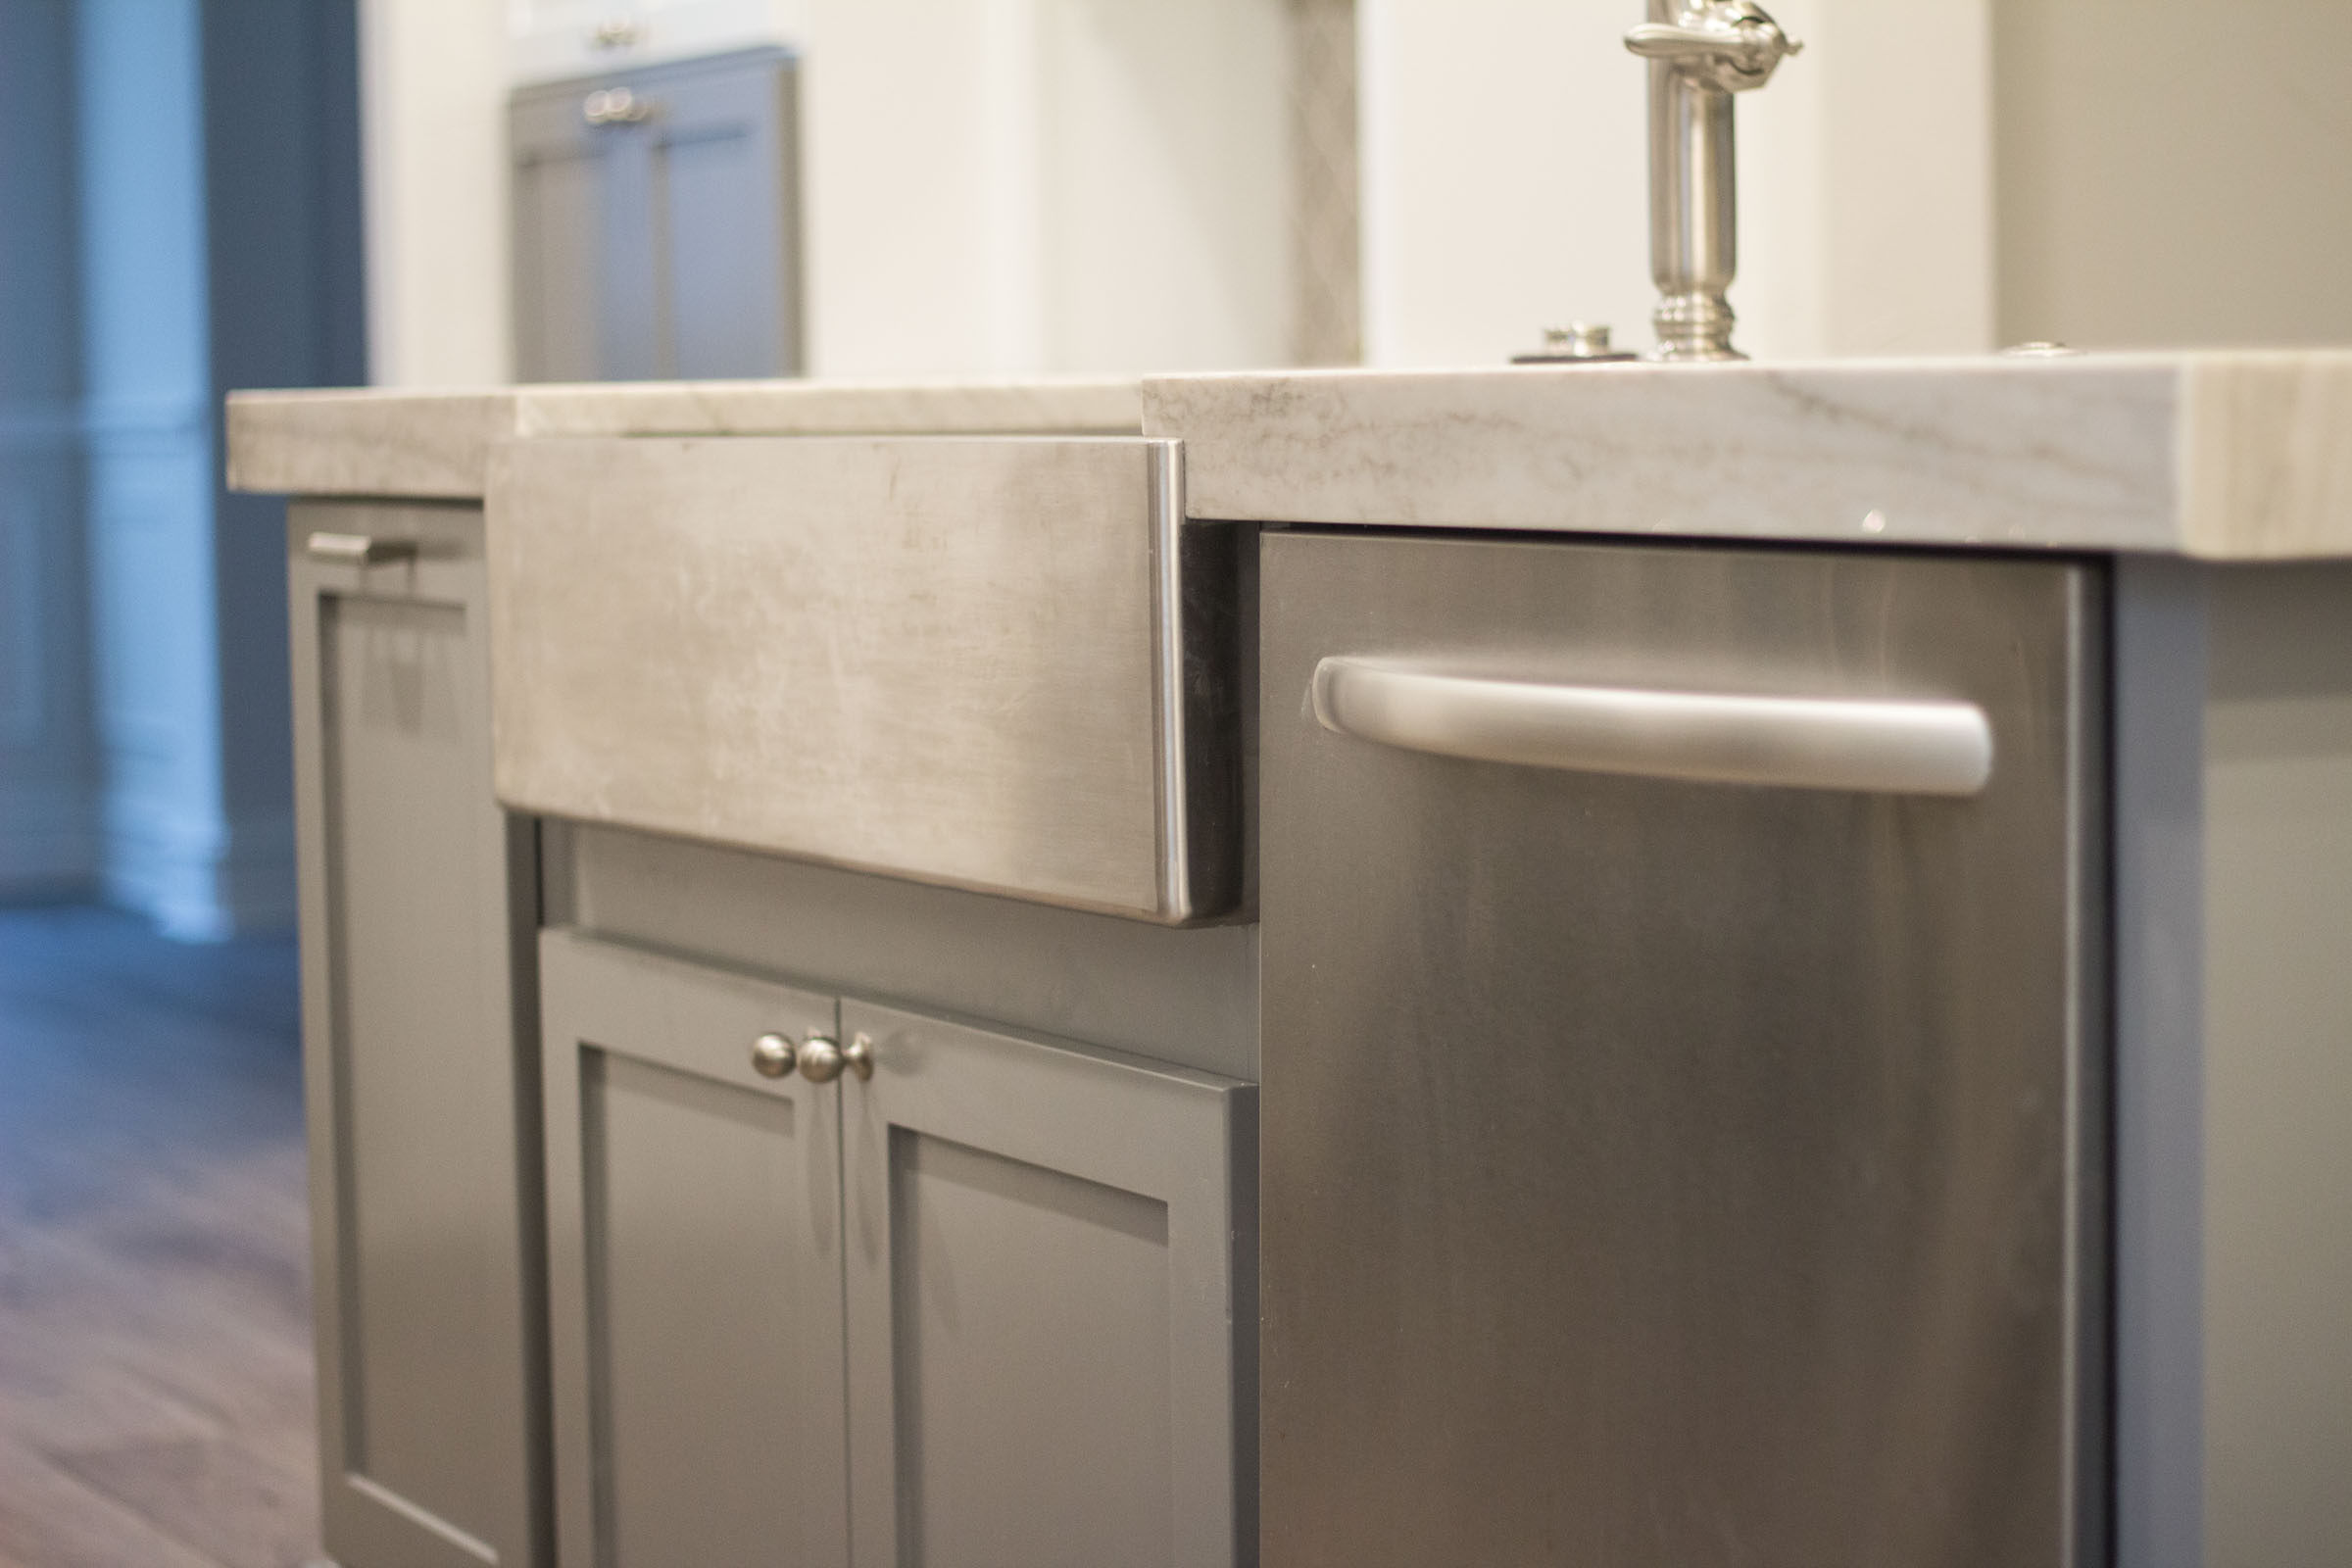 Kitchen remodel with stainless steel appliances, dishwasher, farmhouse sink, grey shaker cabinets, granite counter tops